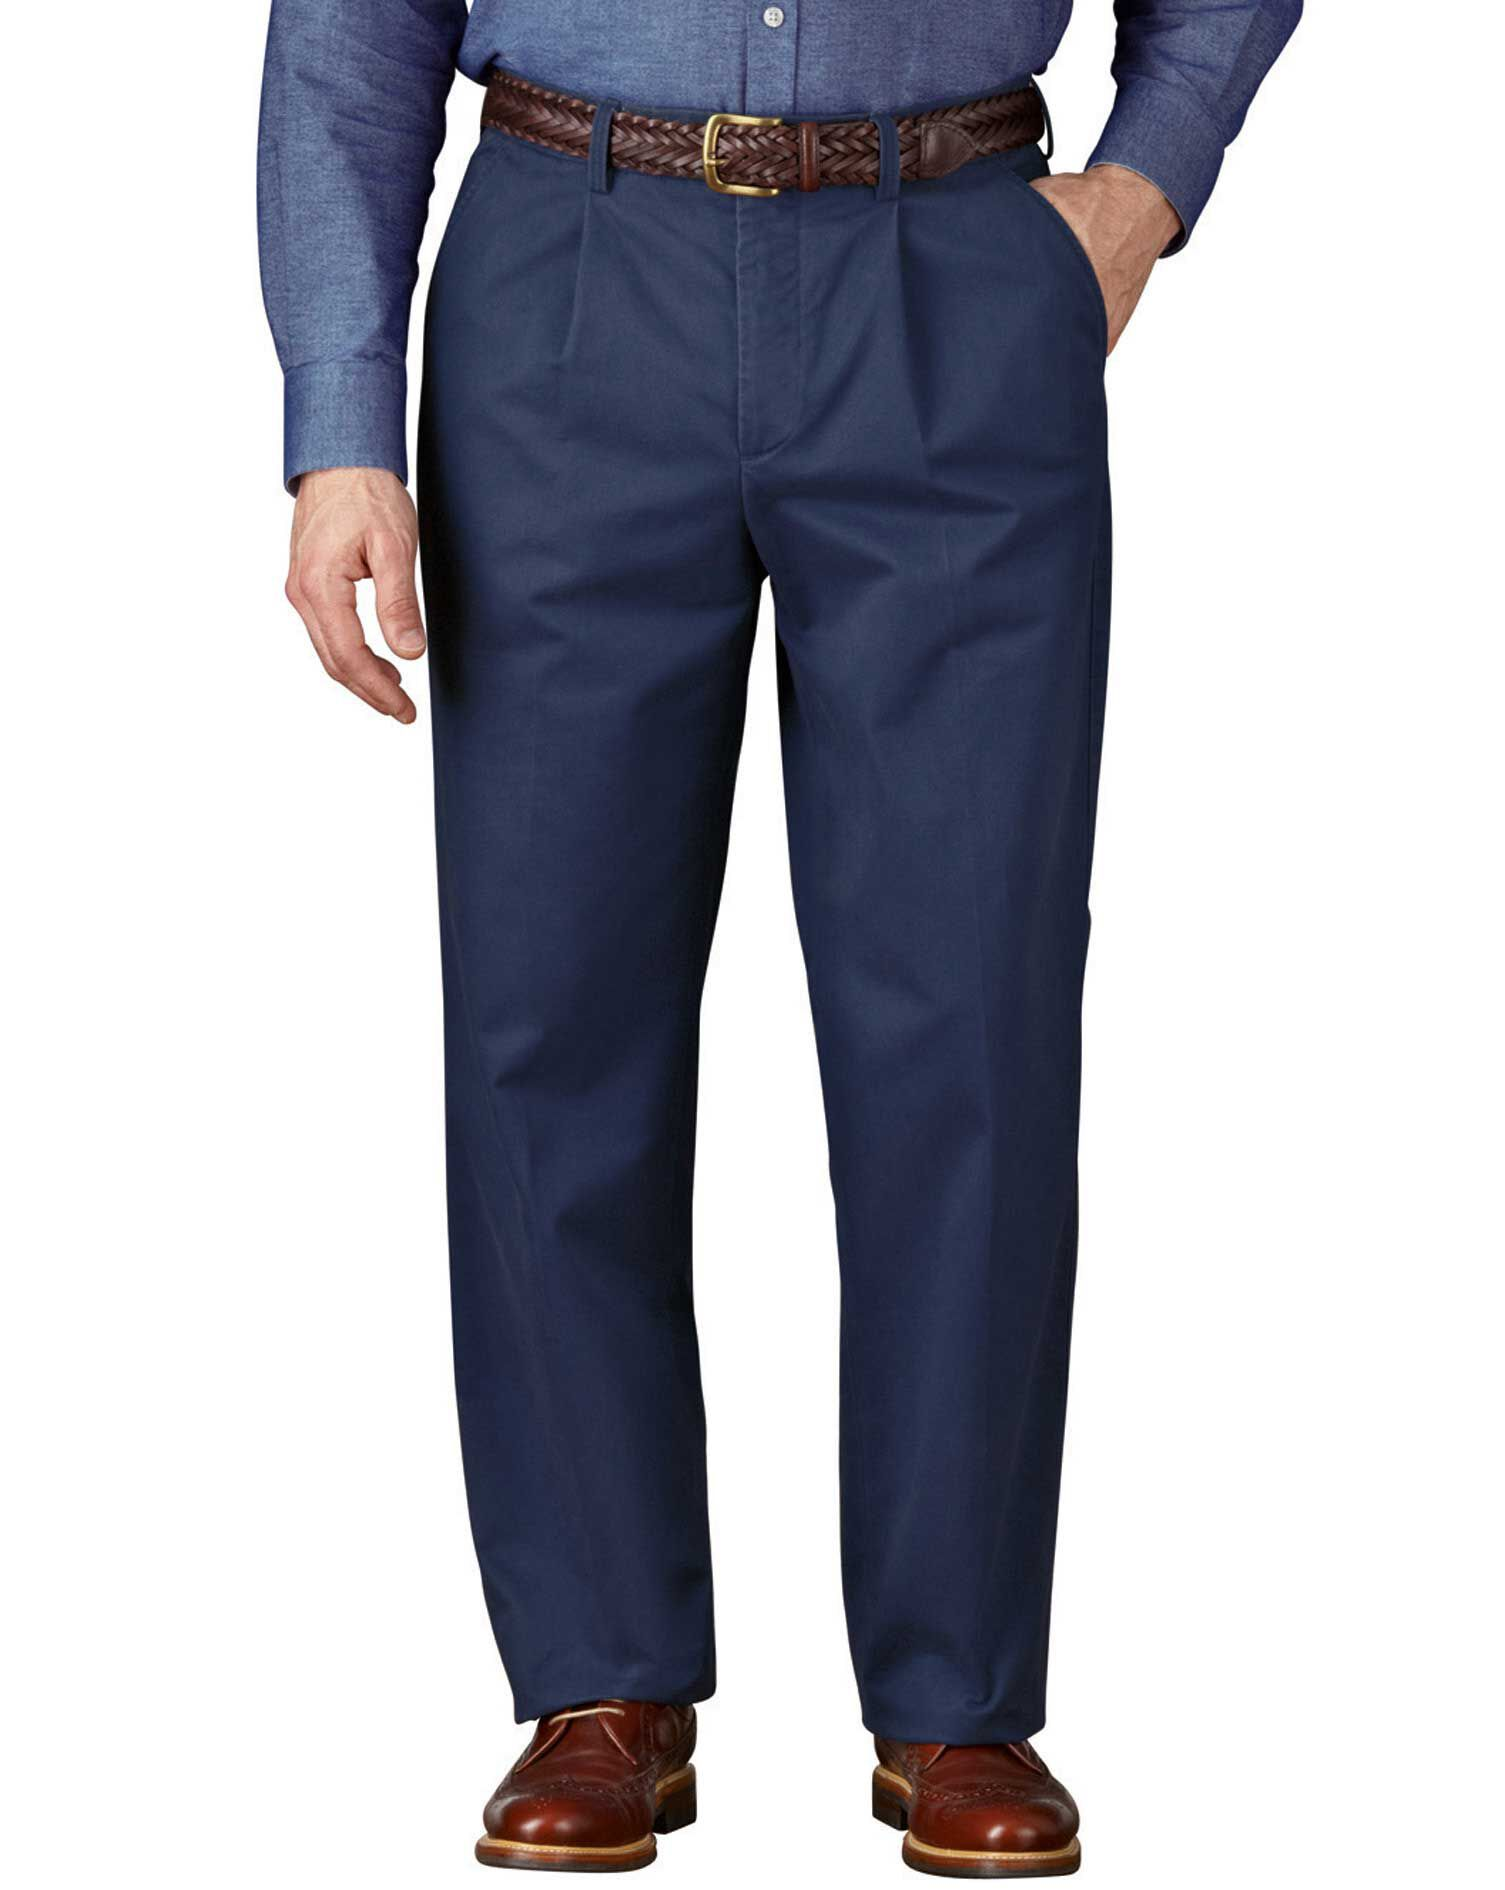 Blue Classic Fit Single Pleat Weekend Cotton Chino Trousers Size W38 L32 by Charles Tyrwhitt